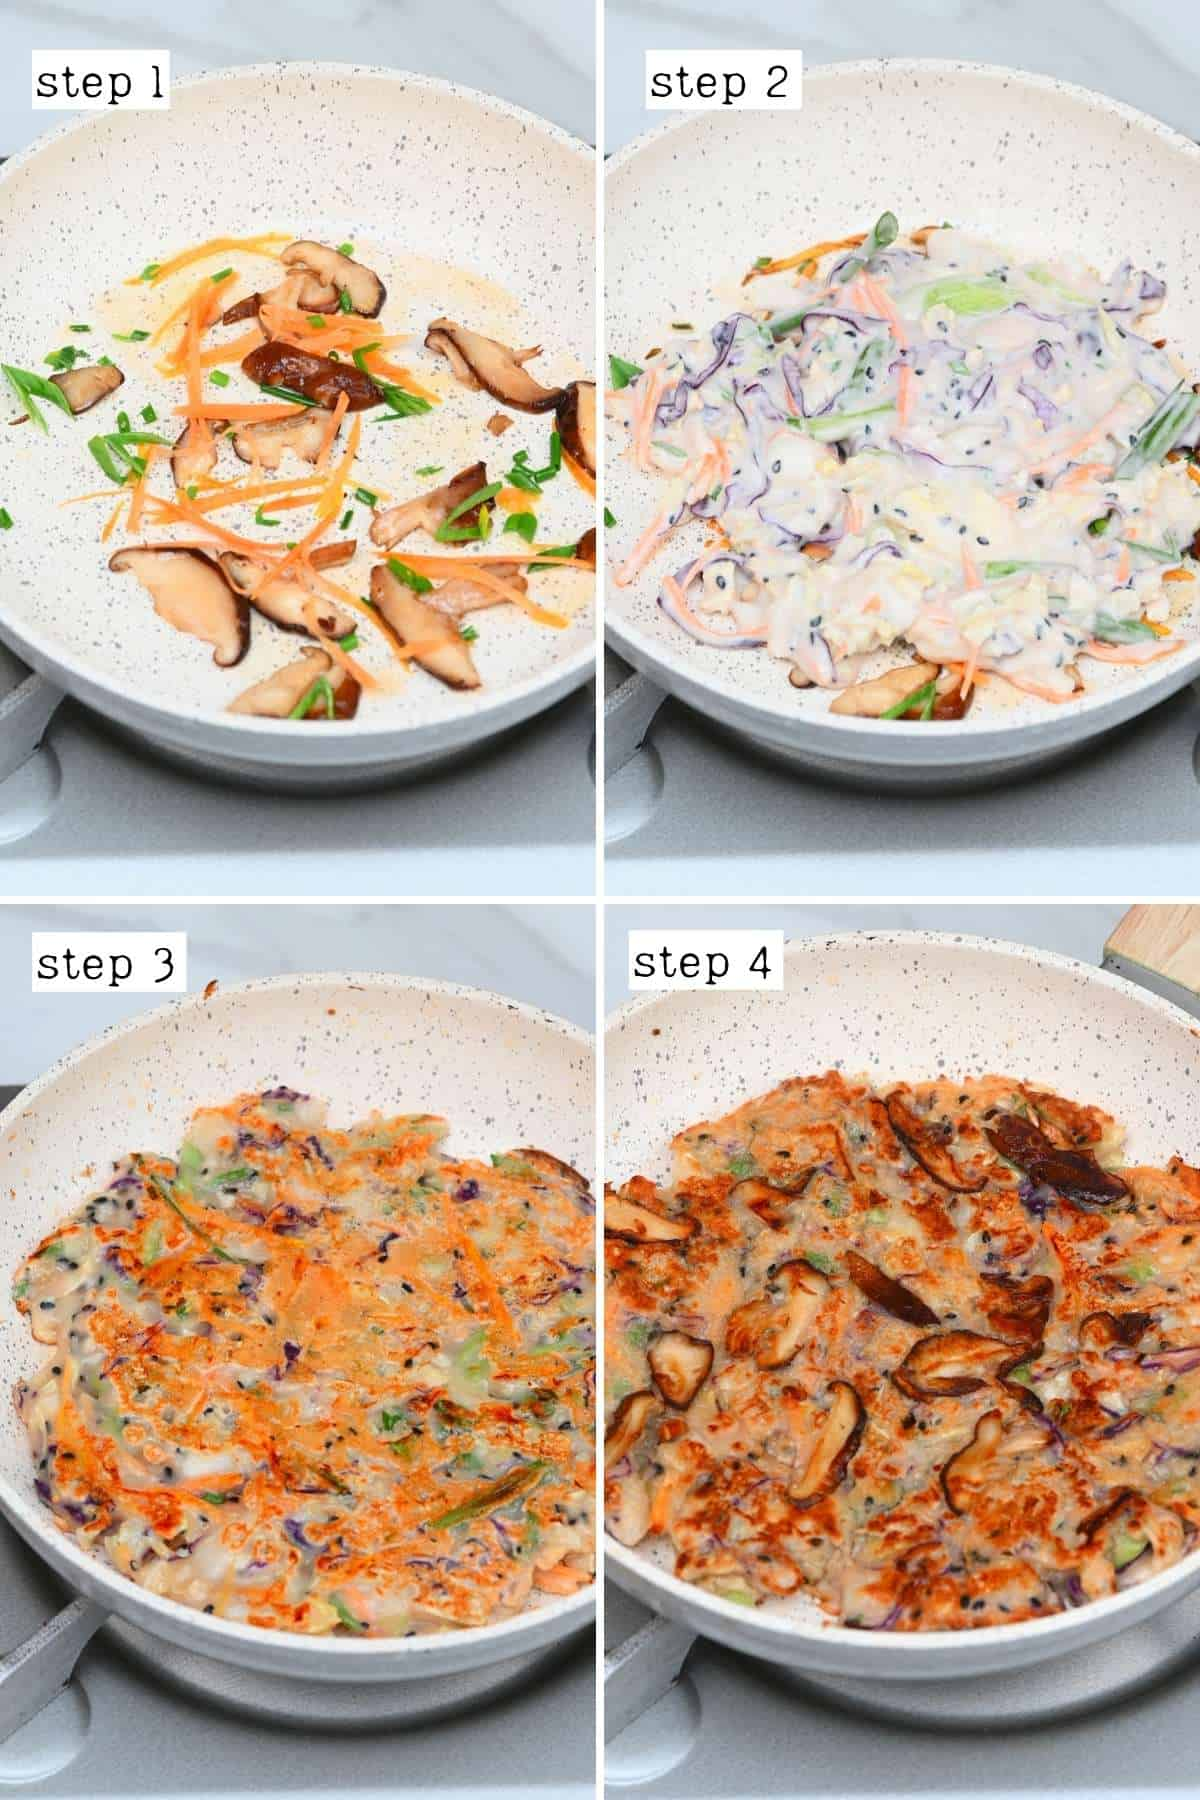 Steps for cooking savory pancakes